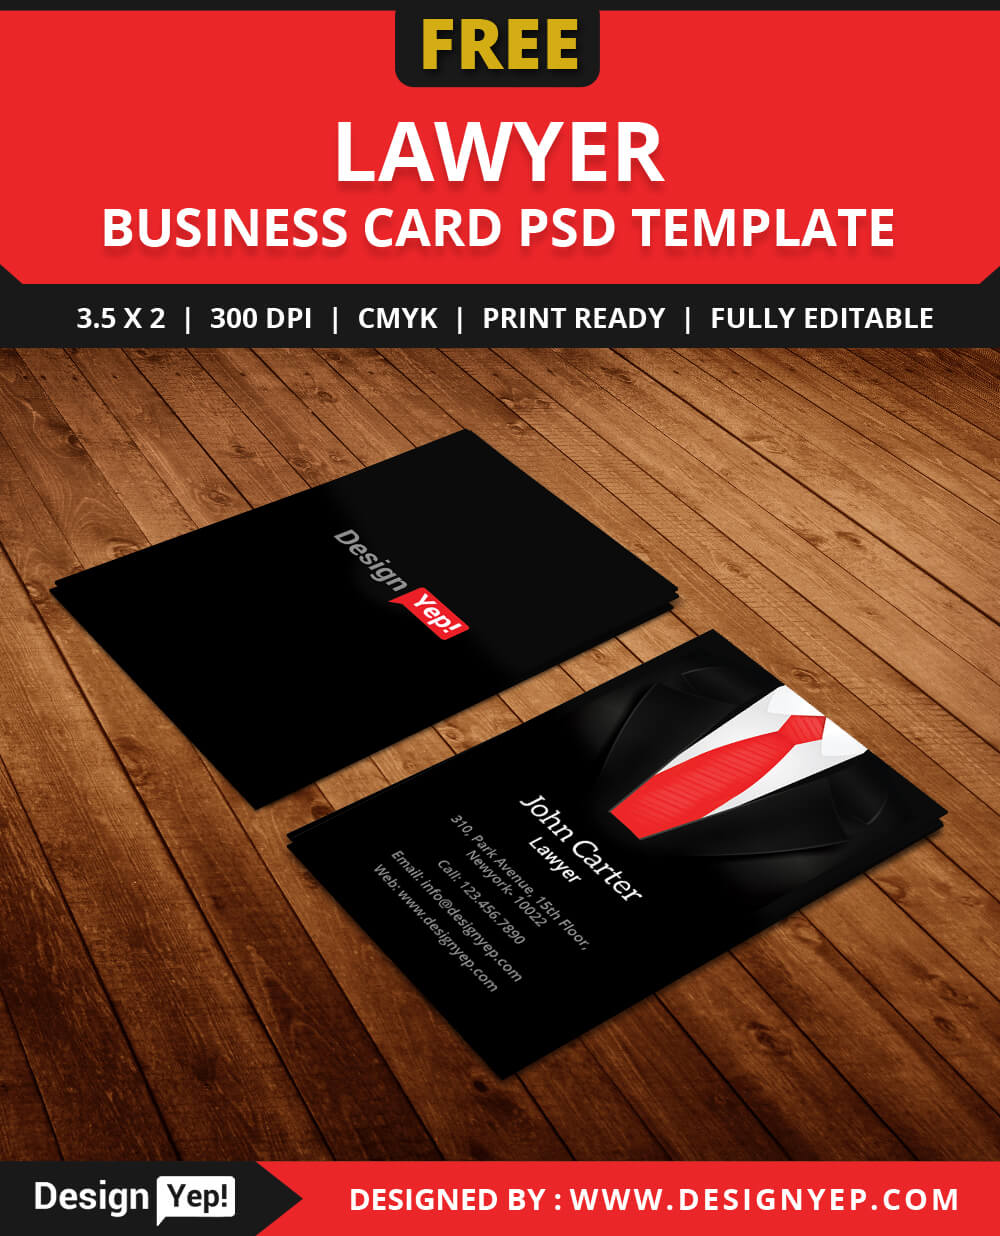 Free Lawyer Business Card Template Psd – Designyep Pertaining To Call Card Templates